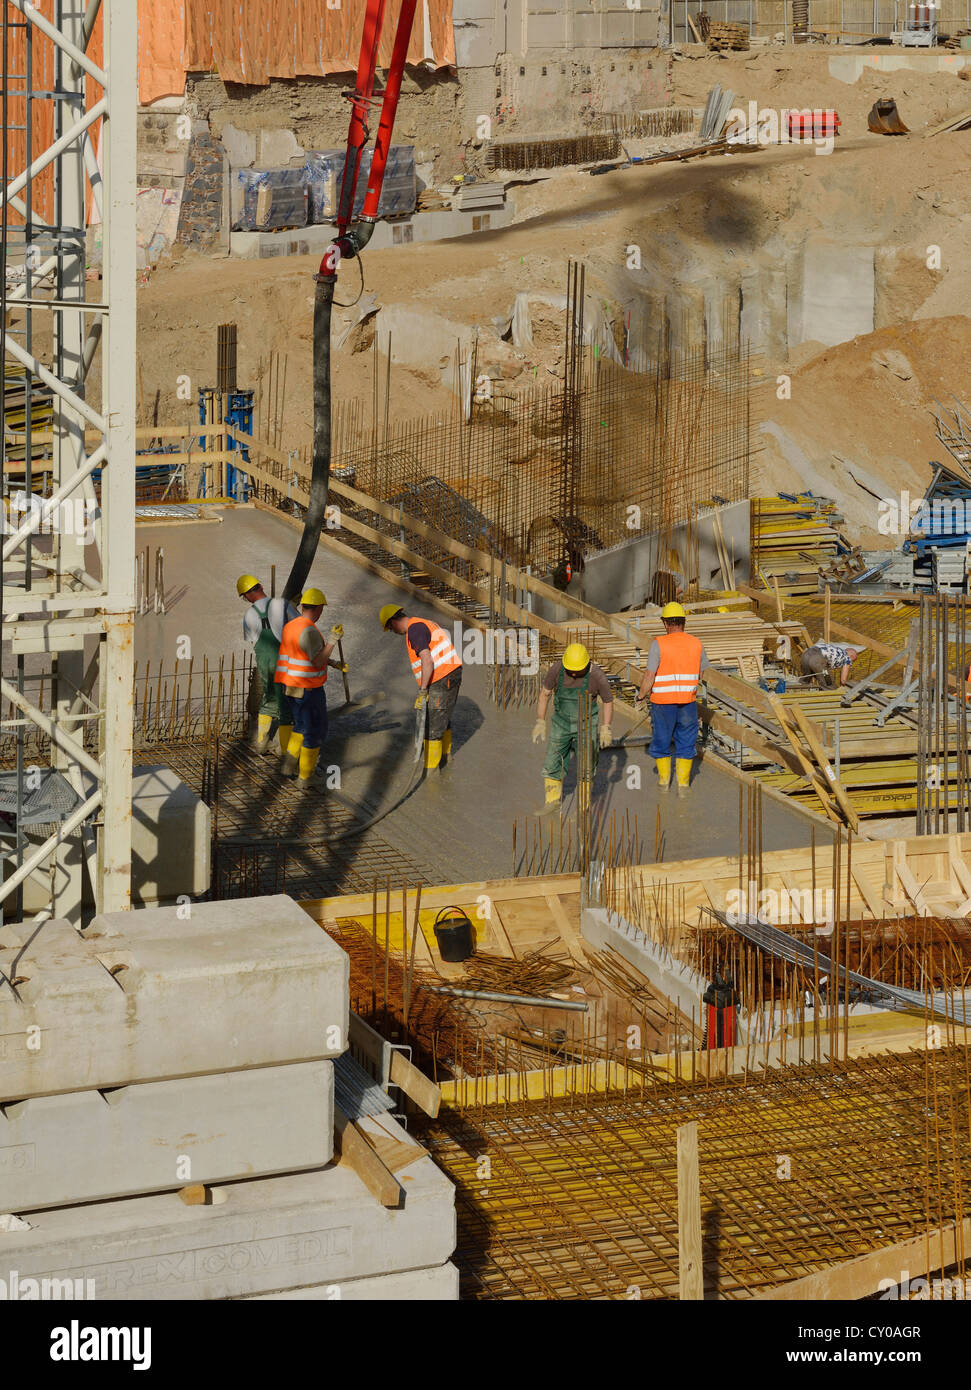 Large construction site, workers pouring concrete into an area surrounded by boarding and reinforcements, North - Stock Image